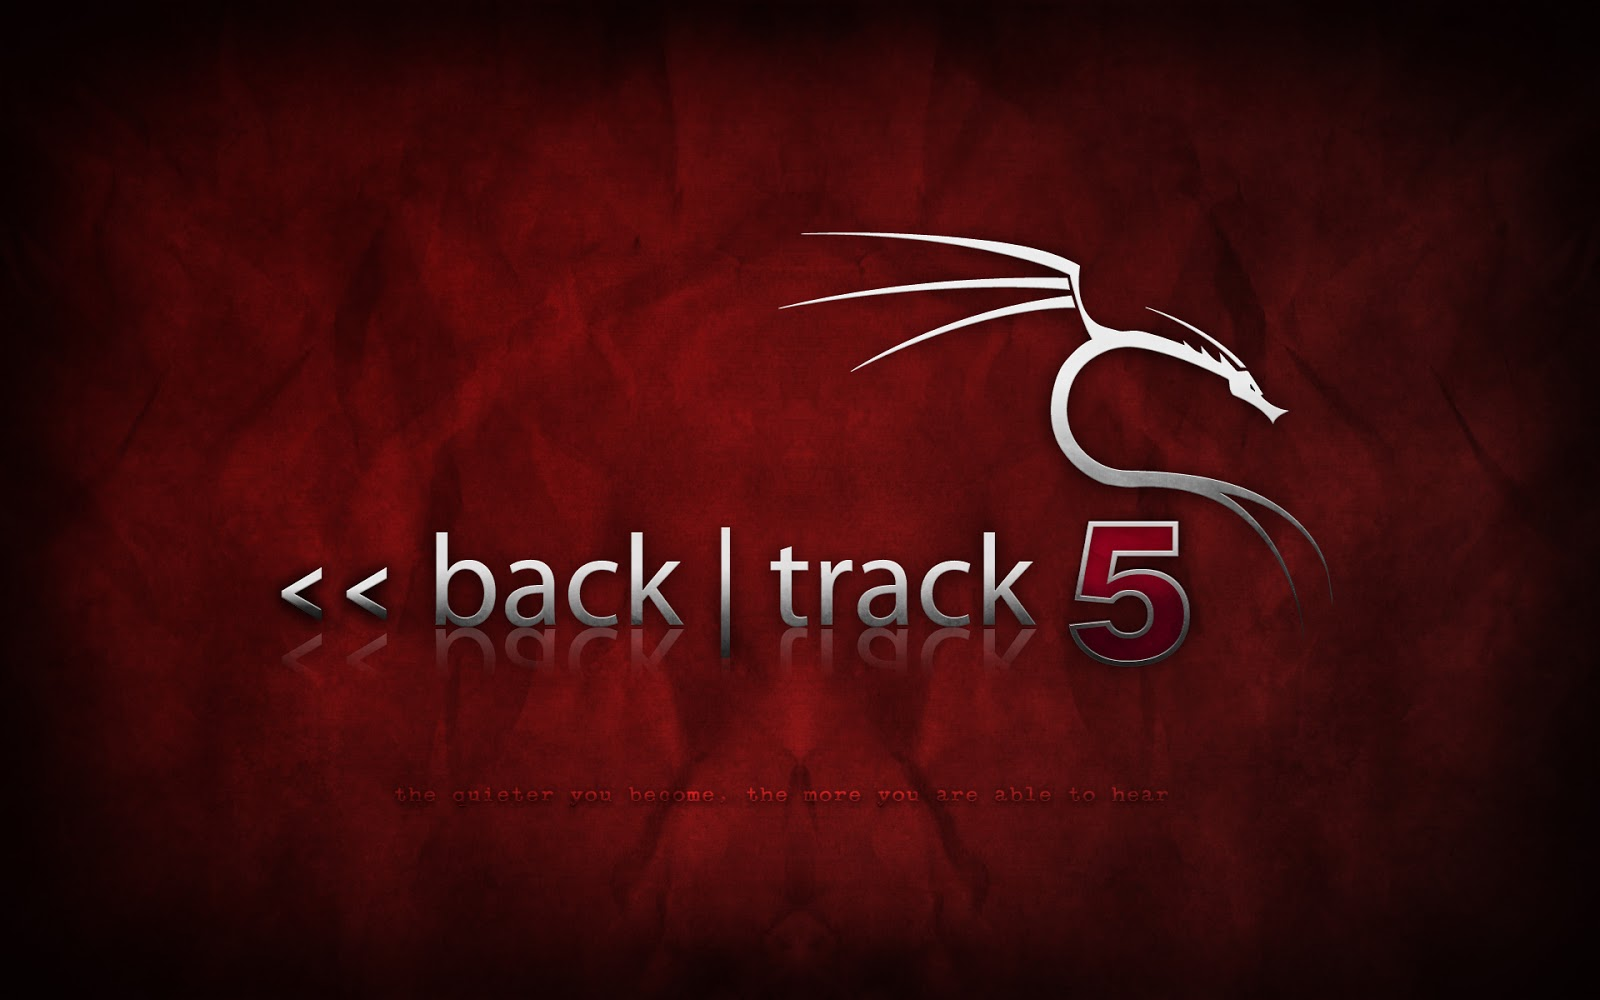 How to Install Best H@cking OS i e BackTrack on Android Phone